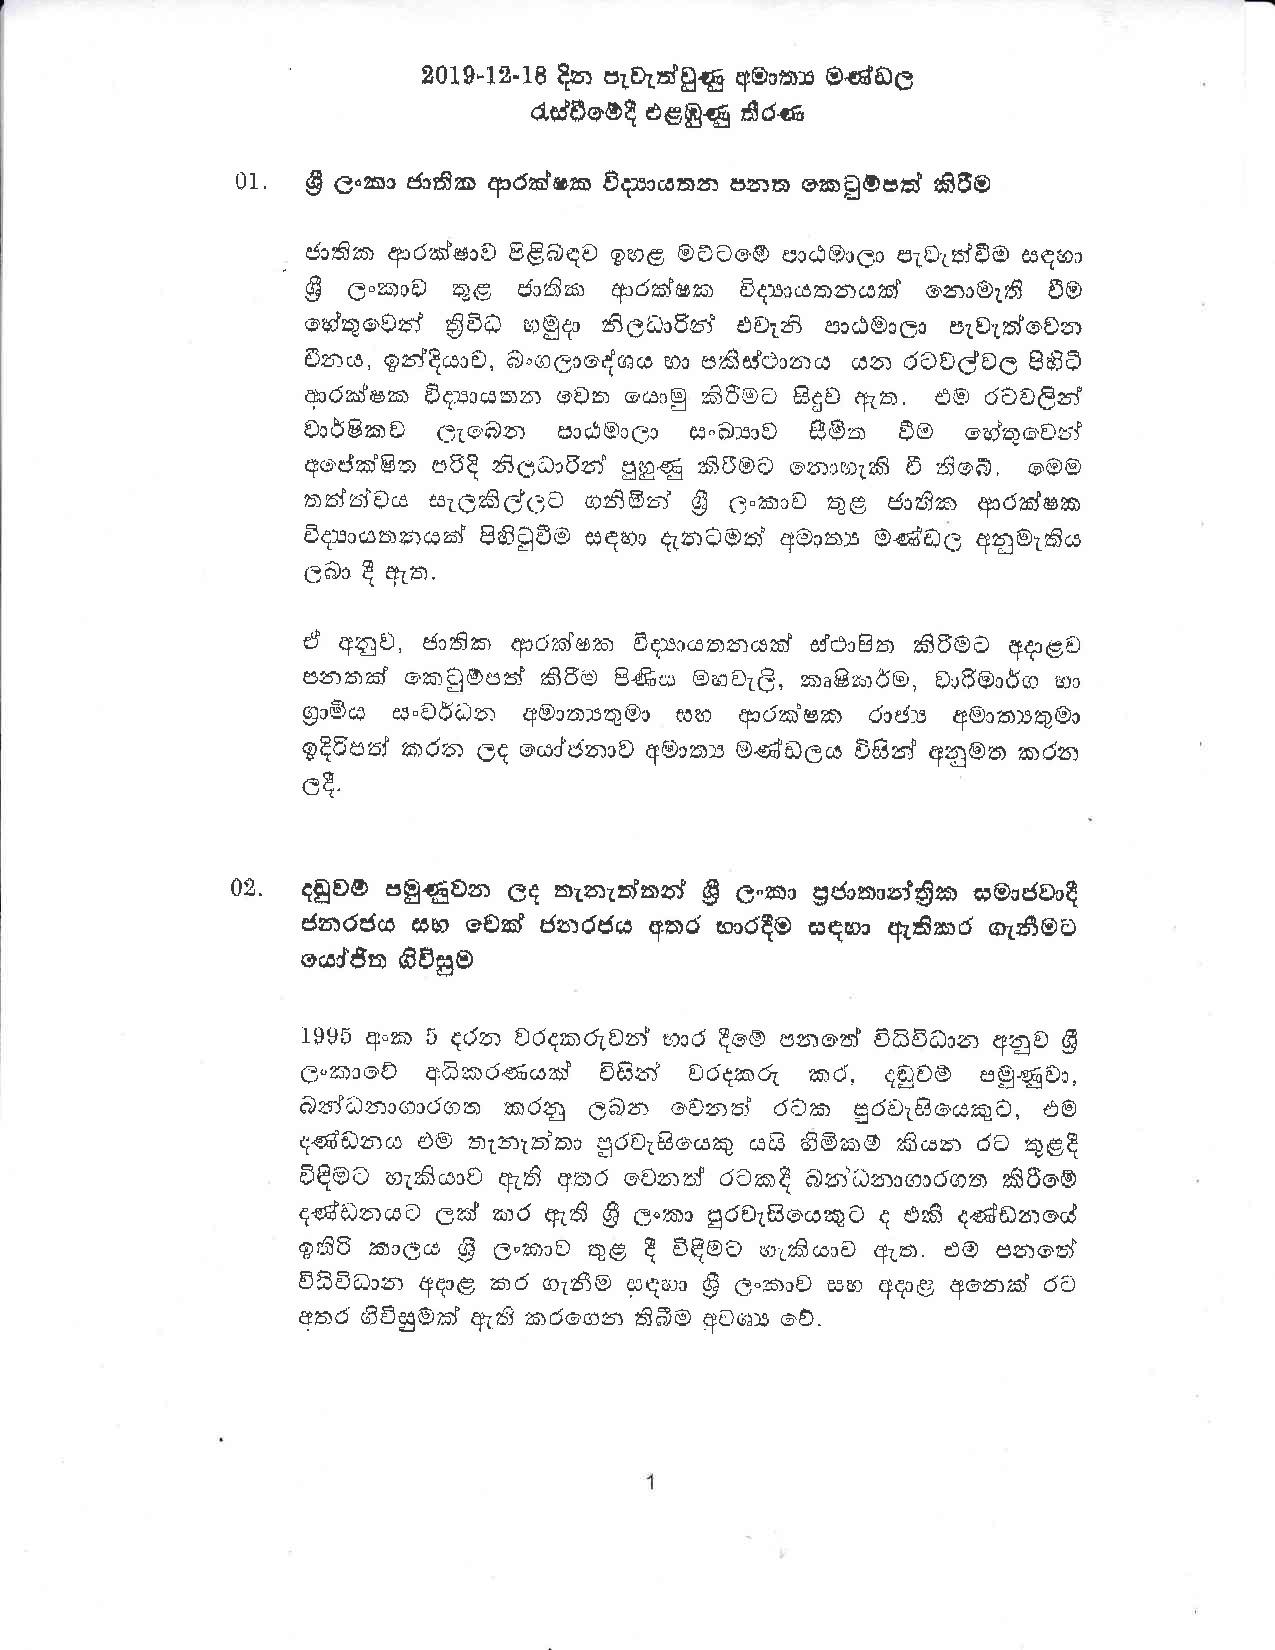 Cabinet Decision on 18.12.2019 page 001